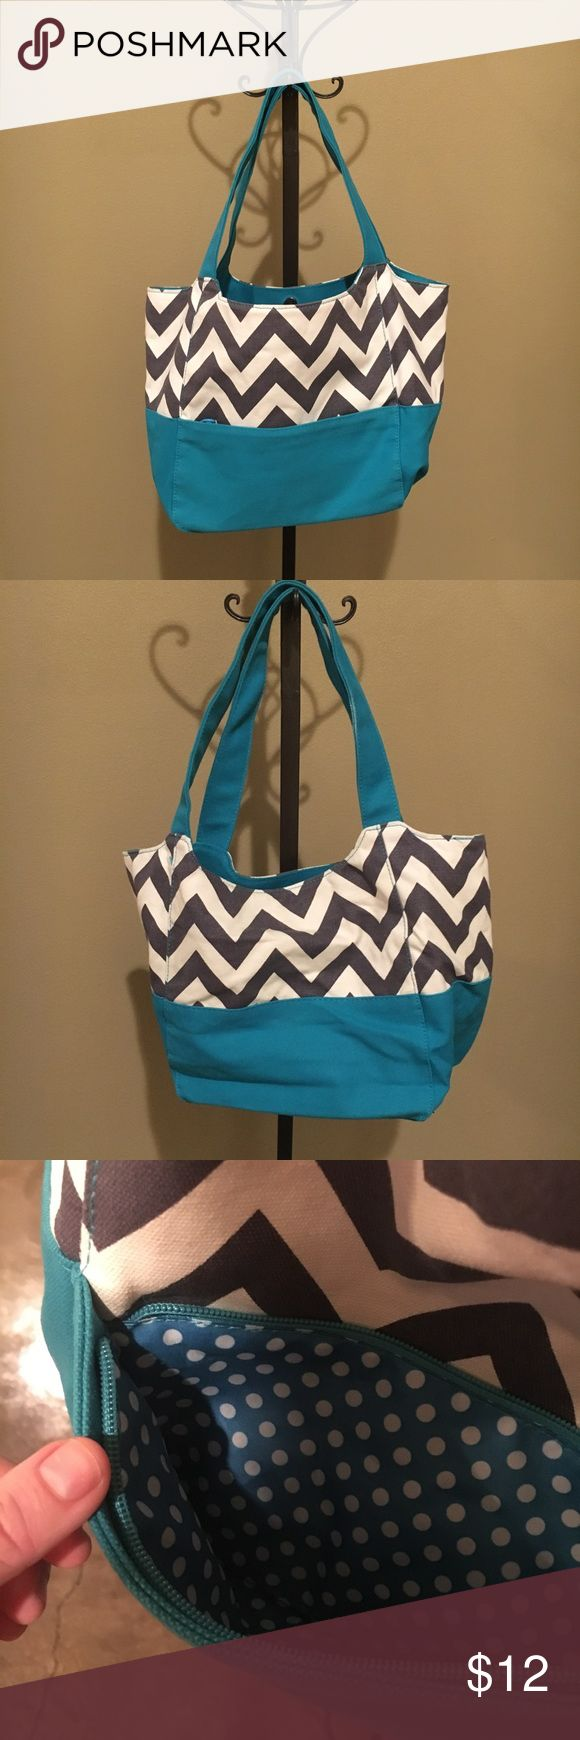 Teal Chevron Canvas Bag Tote Purse Great condition canvas bag a wide and roomy! Inside zip pocket in one wall, 2 slip pockets on opposite side - small outside zip pocket. Grey/Ivory Chevron Pattern, Teal Blue accent color! Bags Hobos